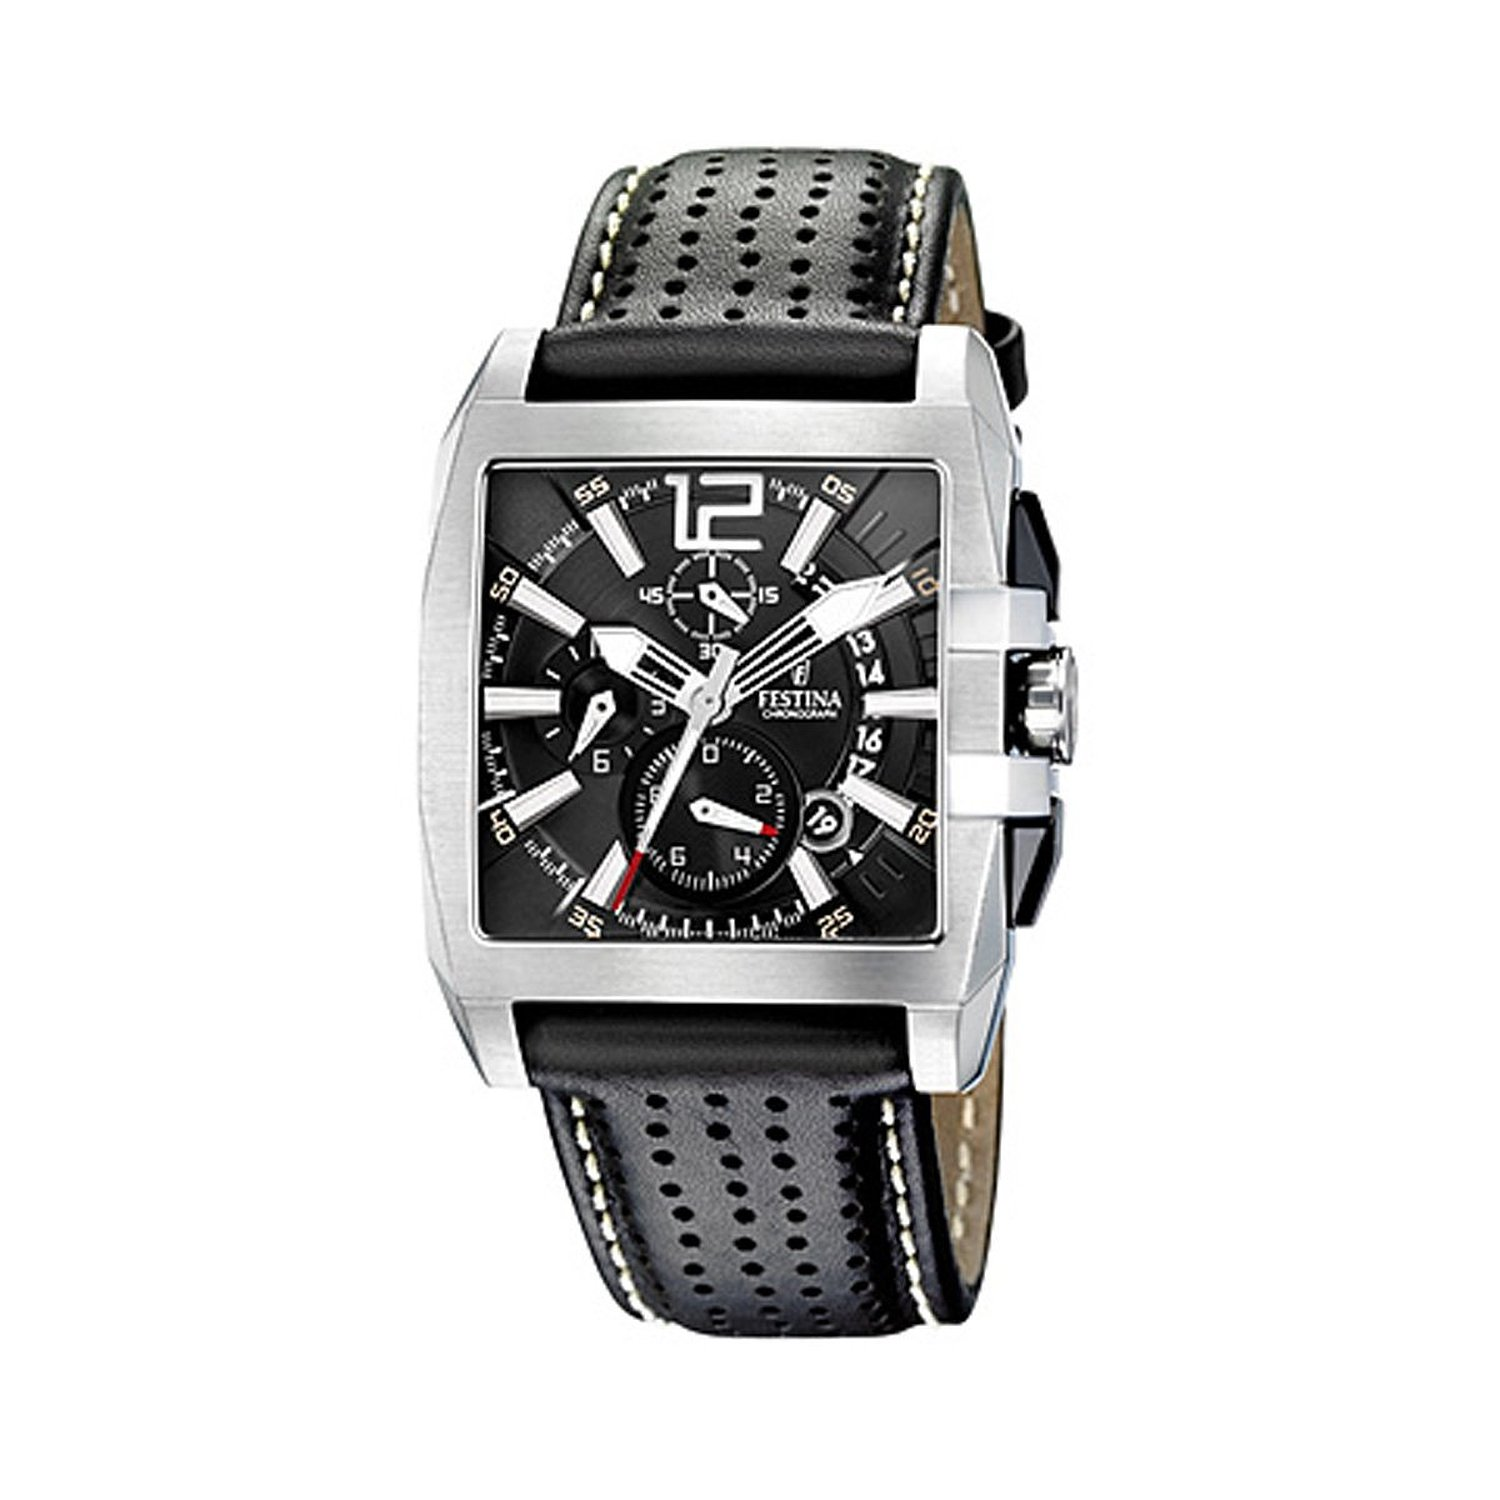 805eee778a2 Get Quotations · Festina - Men s Watches - Festina F16363-6